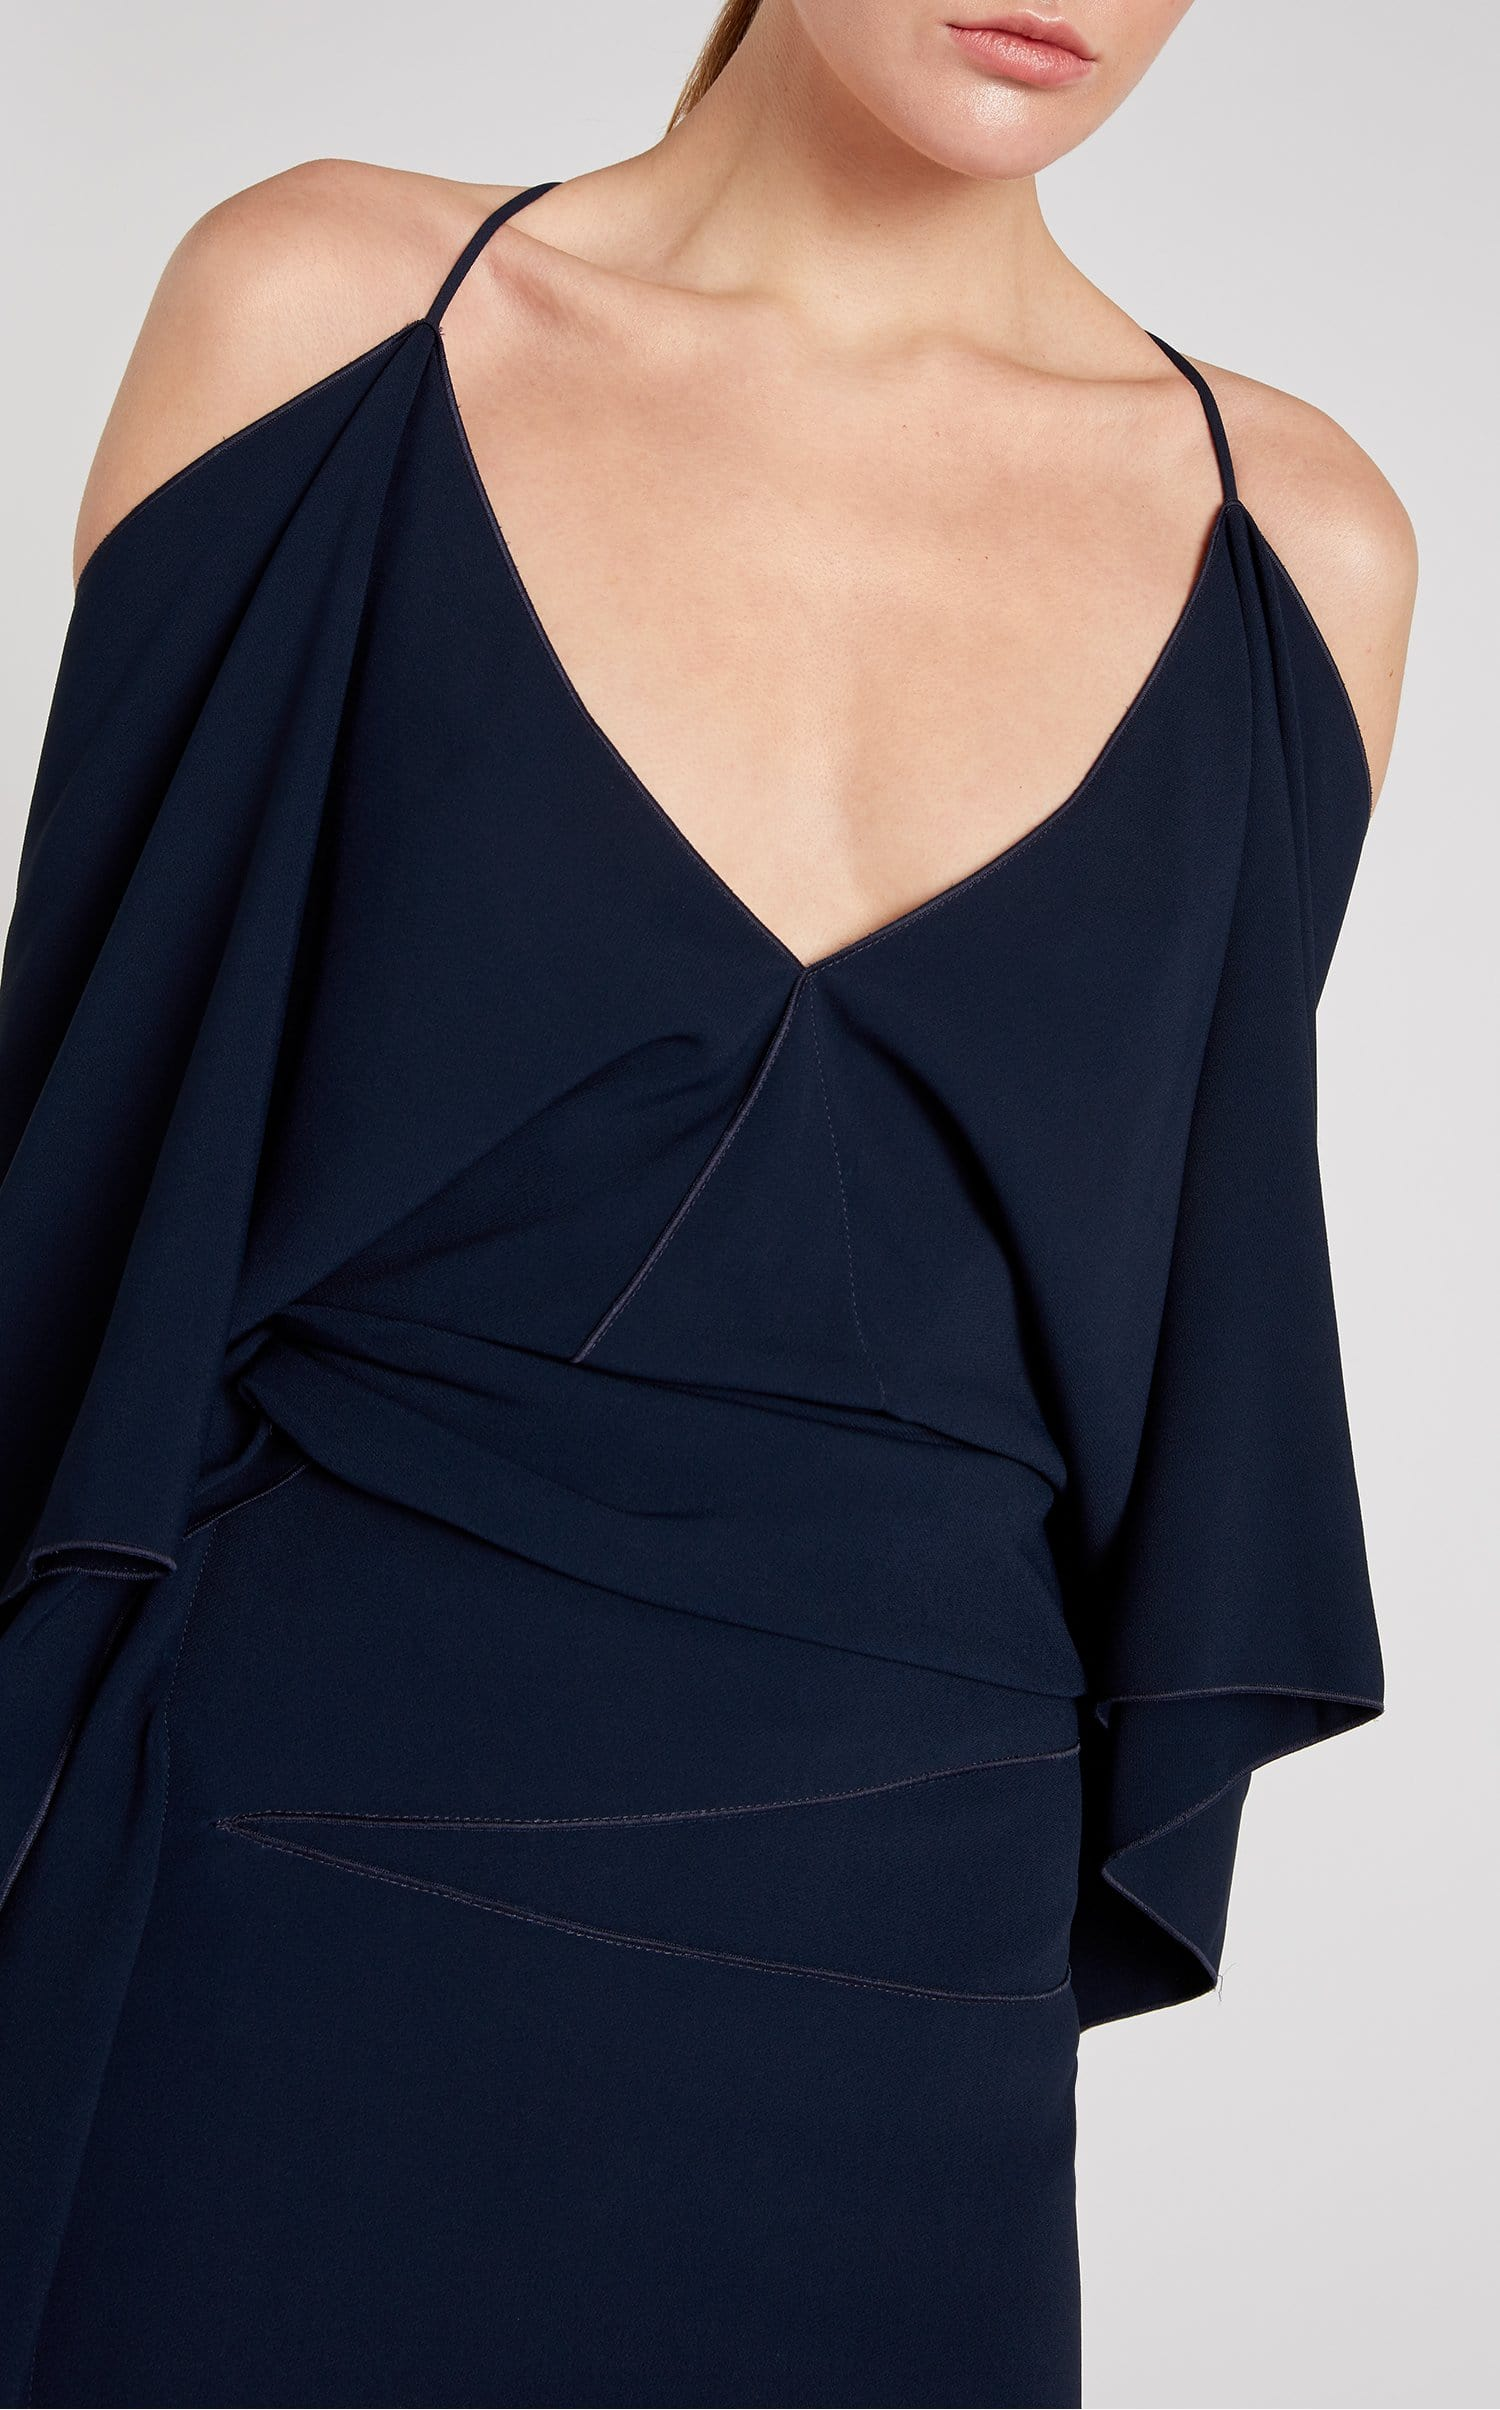 Vincent Dress In Navy from Roland Mouret